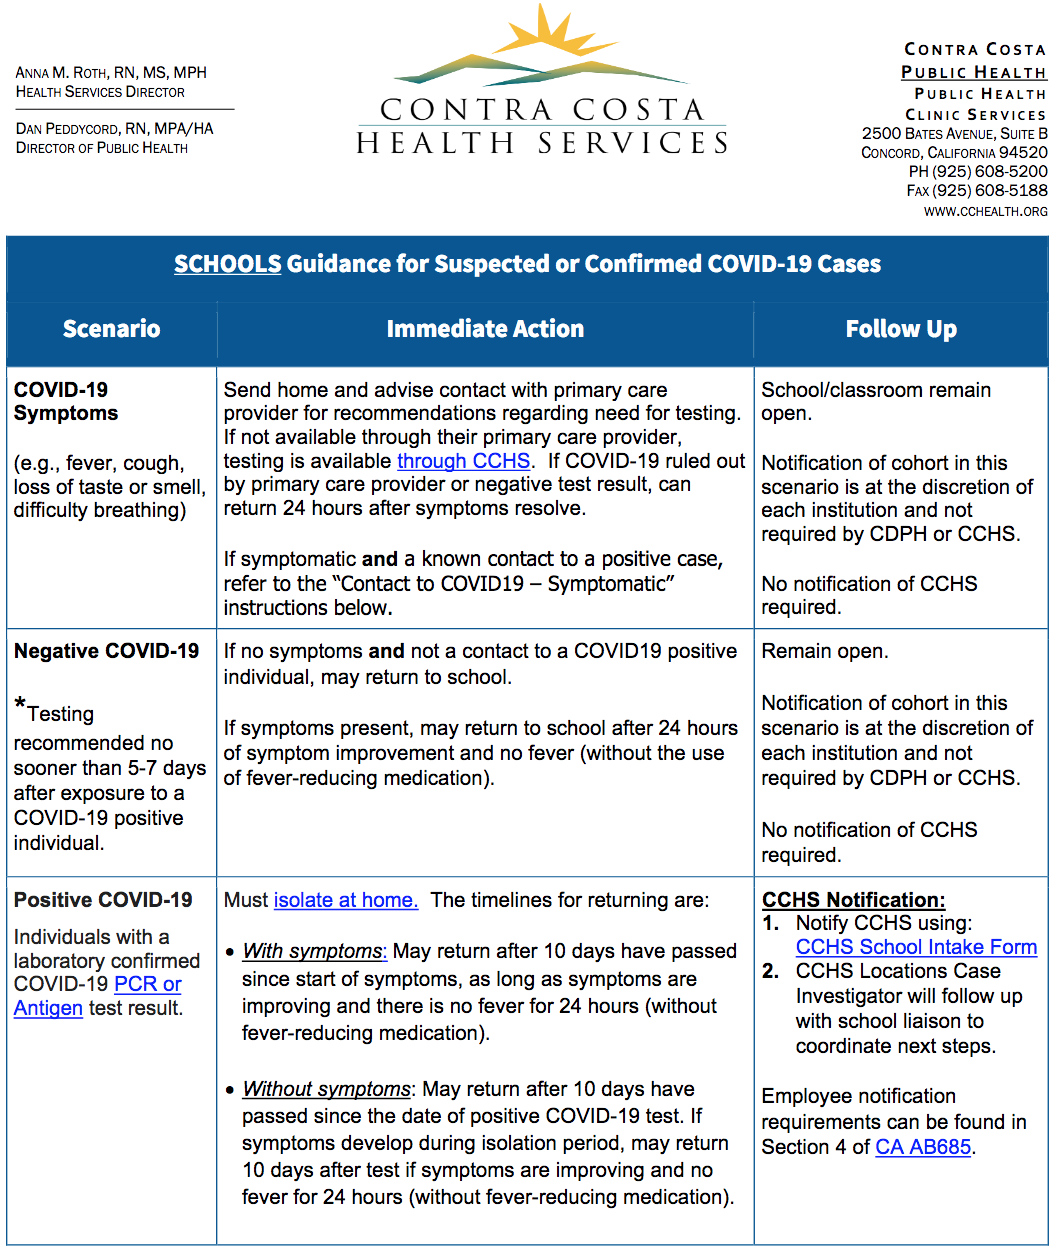 Schools Guidance for Suspected or Confirmed COVID-19 Cases